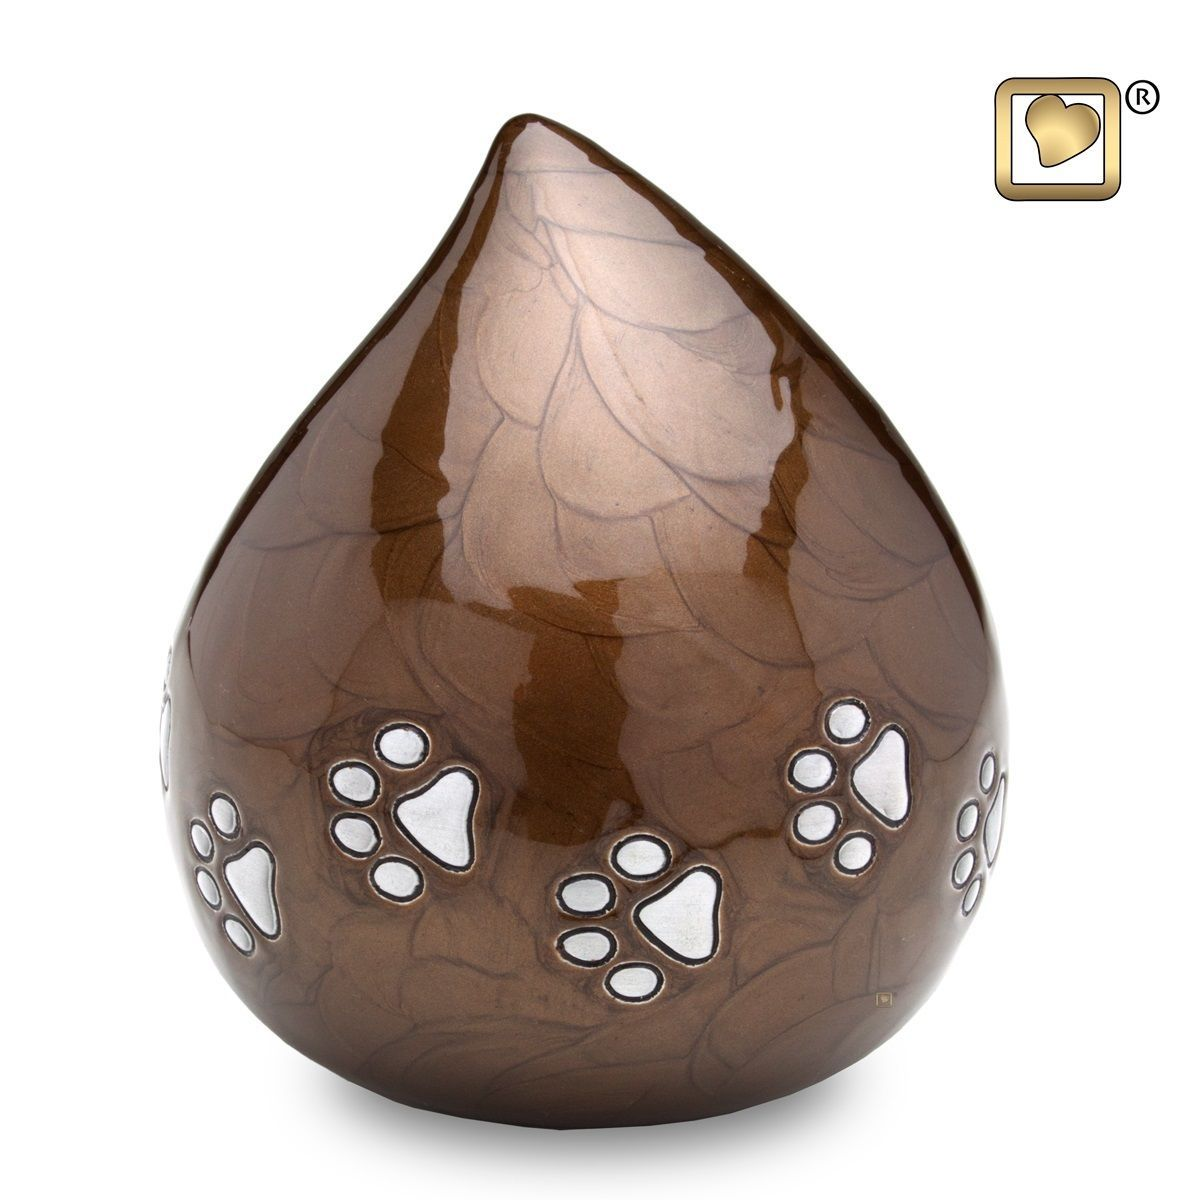 Bronze LoveDrop Pet Funeral Cremation Urn, 60 Cubic Inches